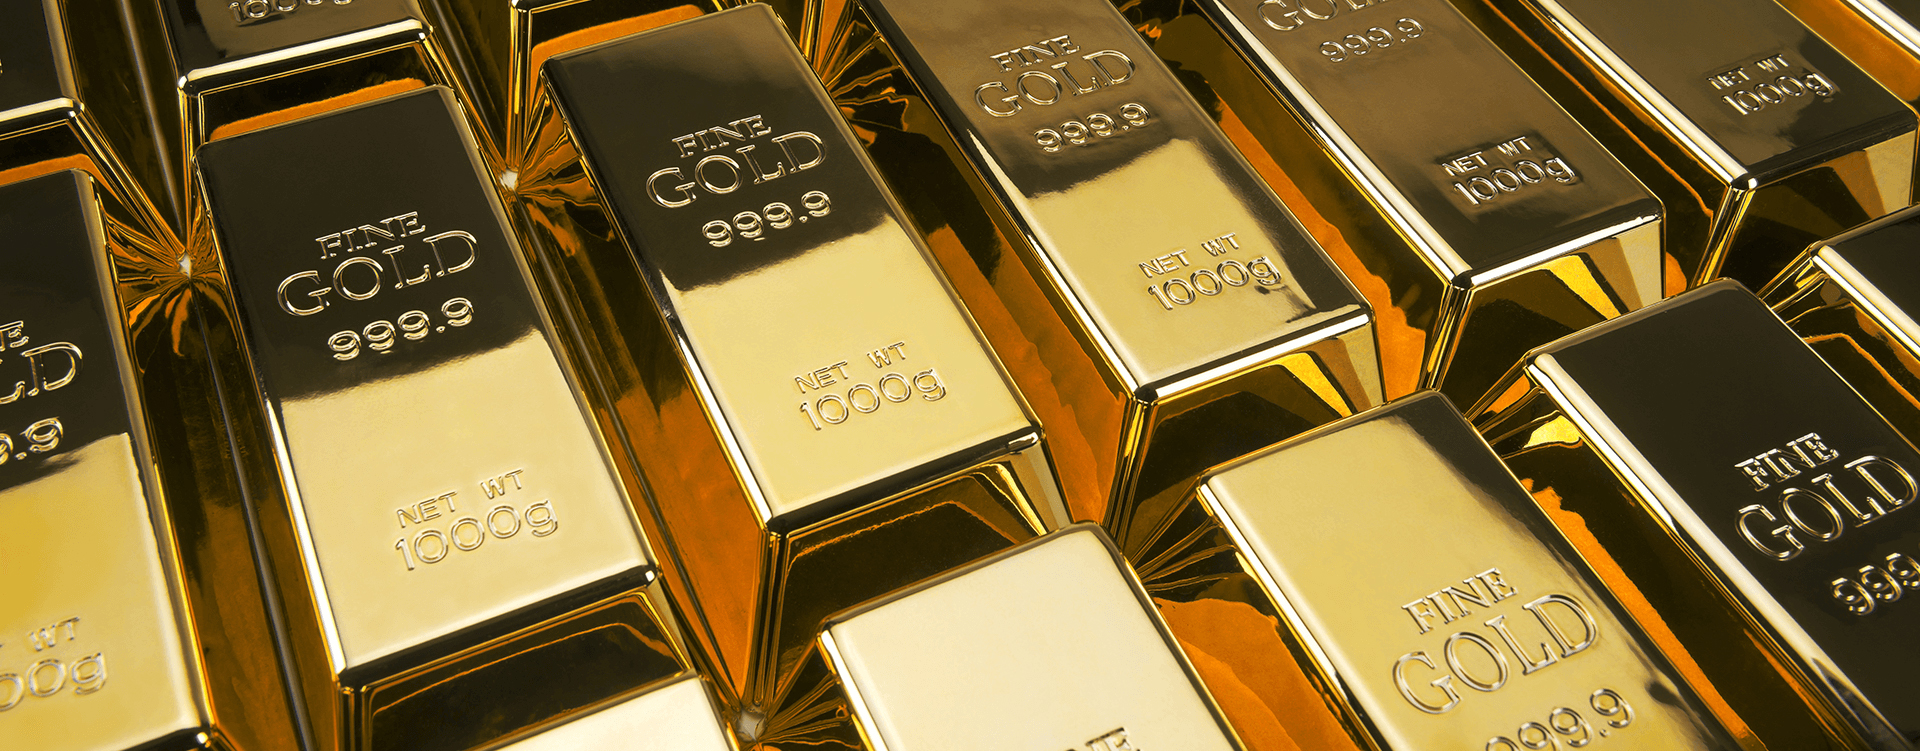 Serbia's gold reserves rise most in SEE in 2016 - table